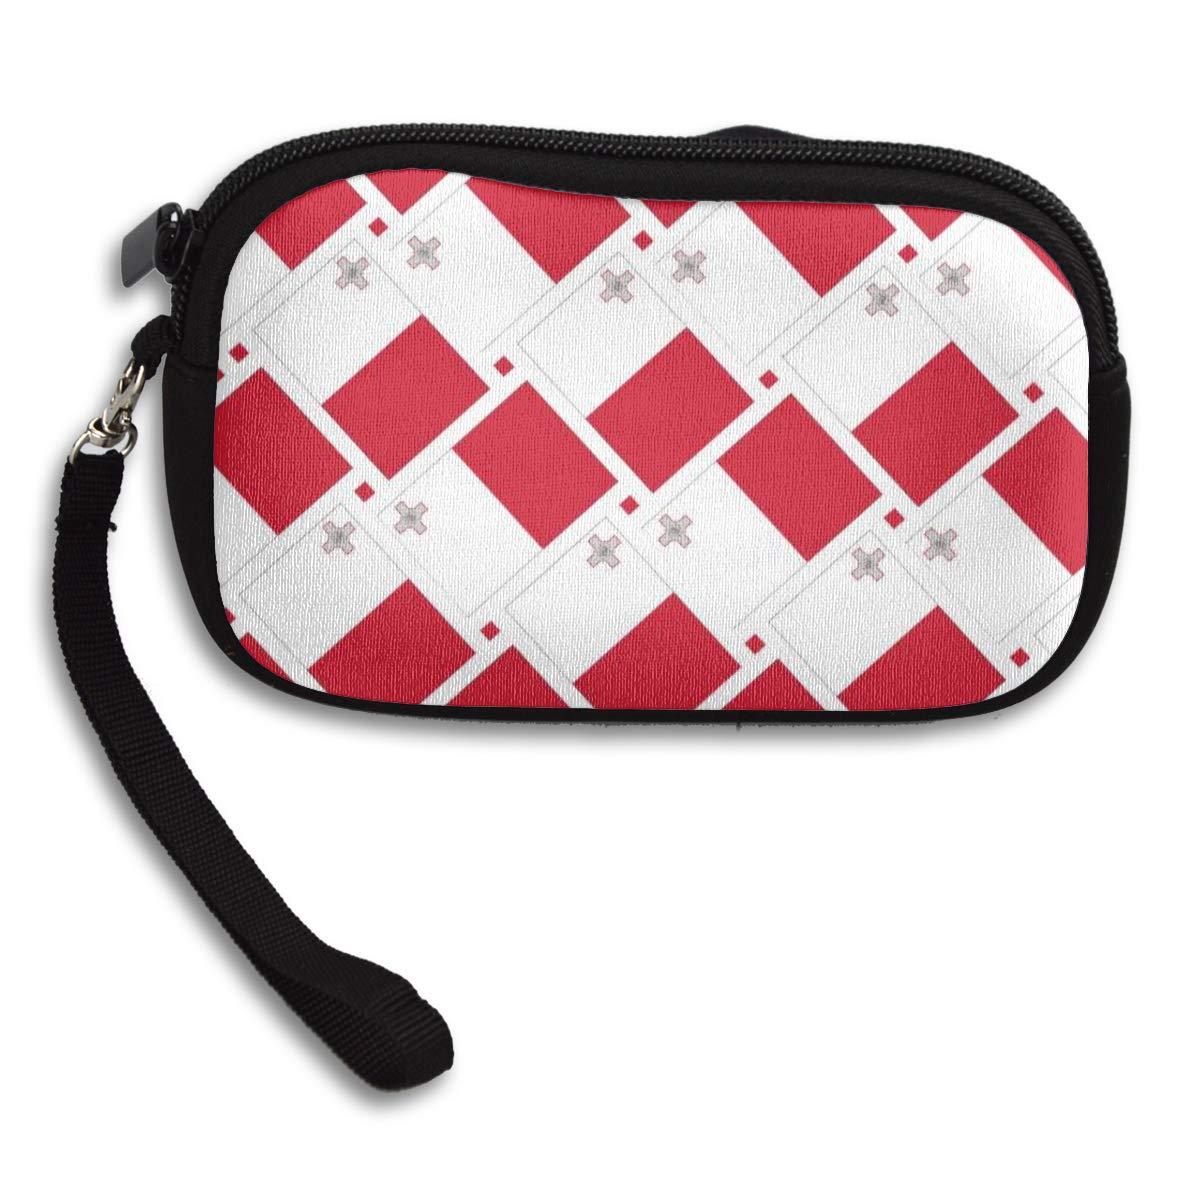 Coin Purse Malta Flag Weave wallet change Purse with Zipper Wallet Coin Pouch Mini Size Cash Phone Holder